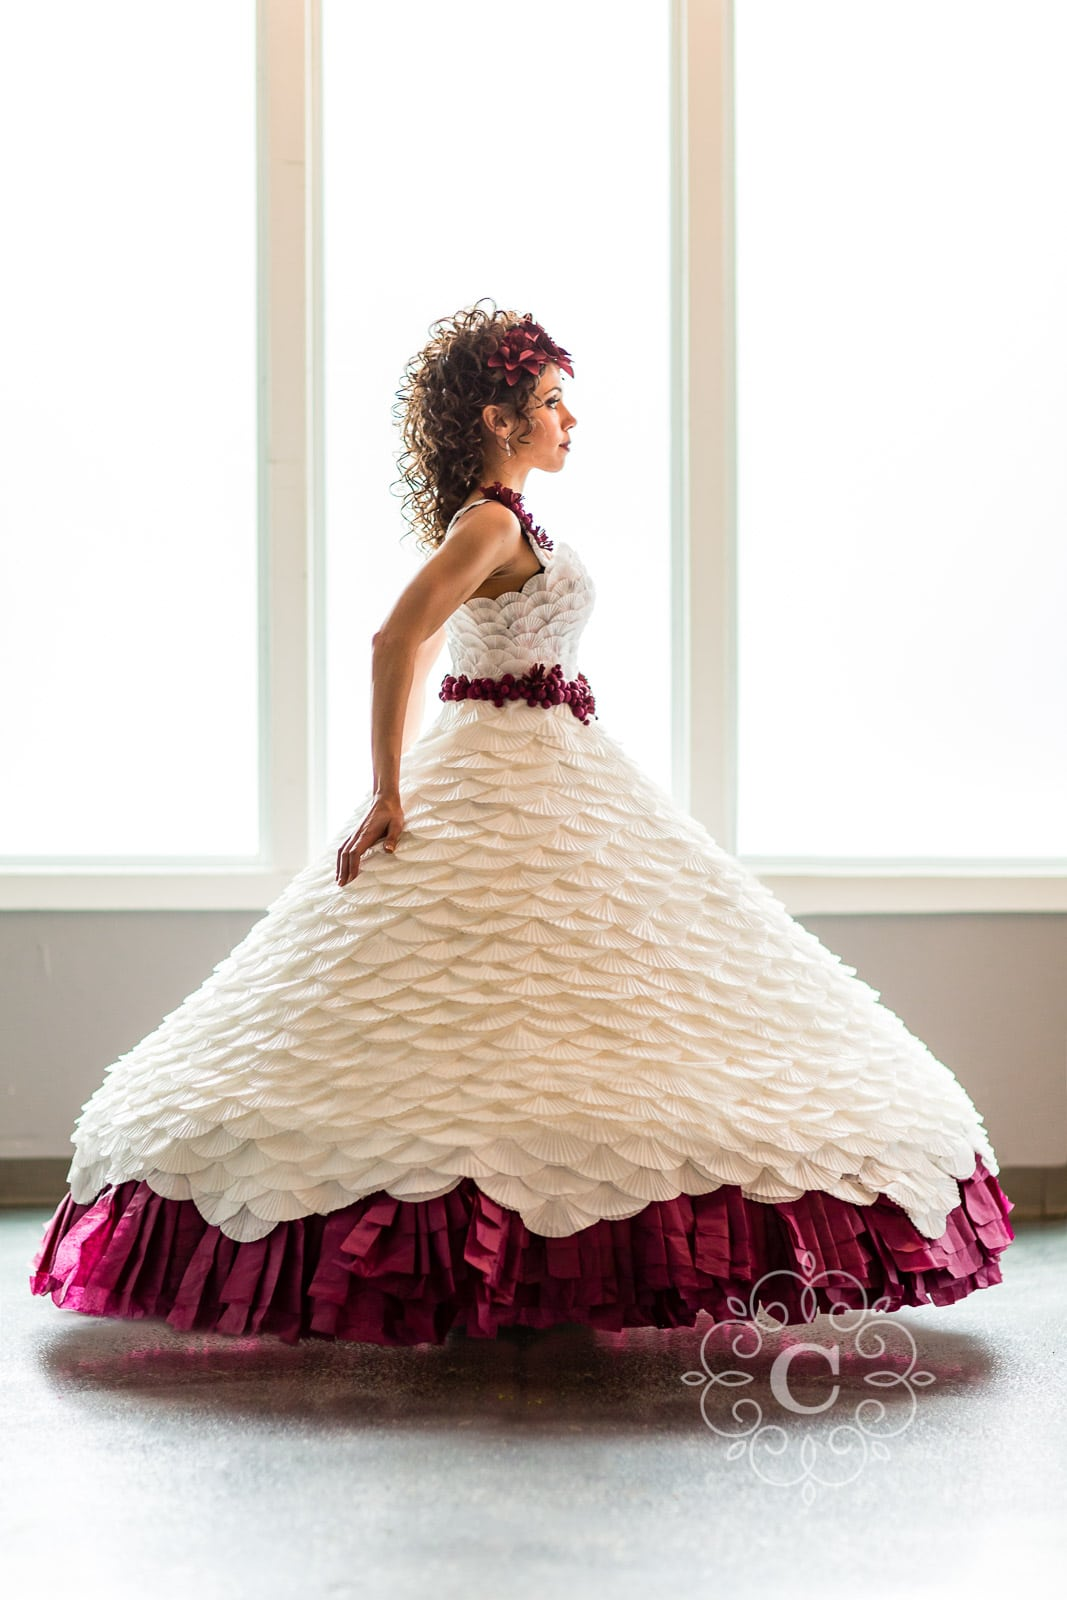 Fine Art Paper Dress Styled Photoshoot